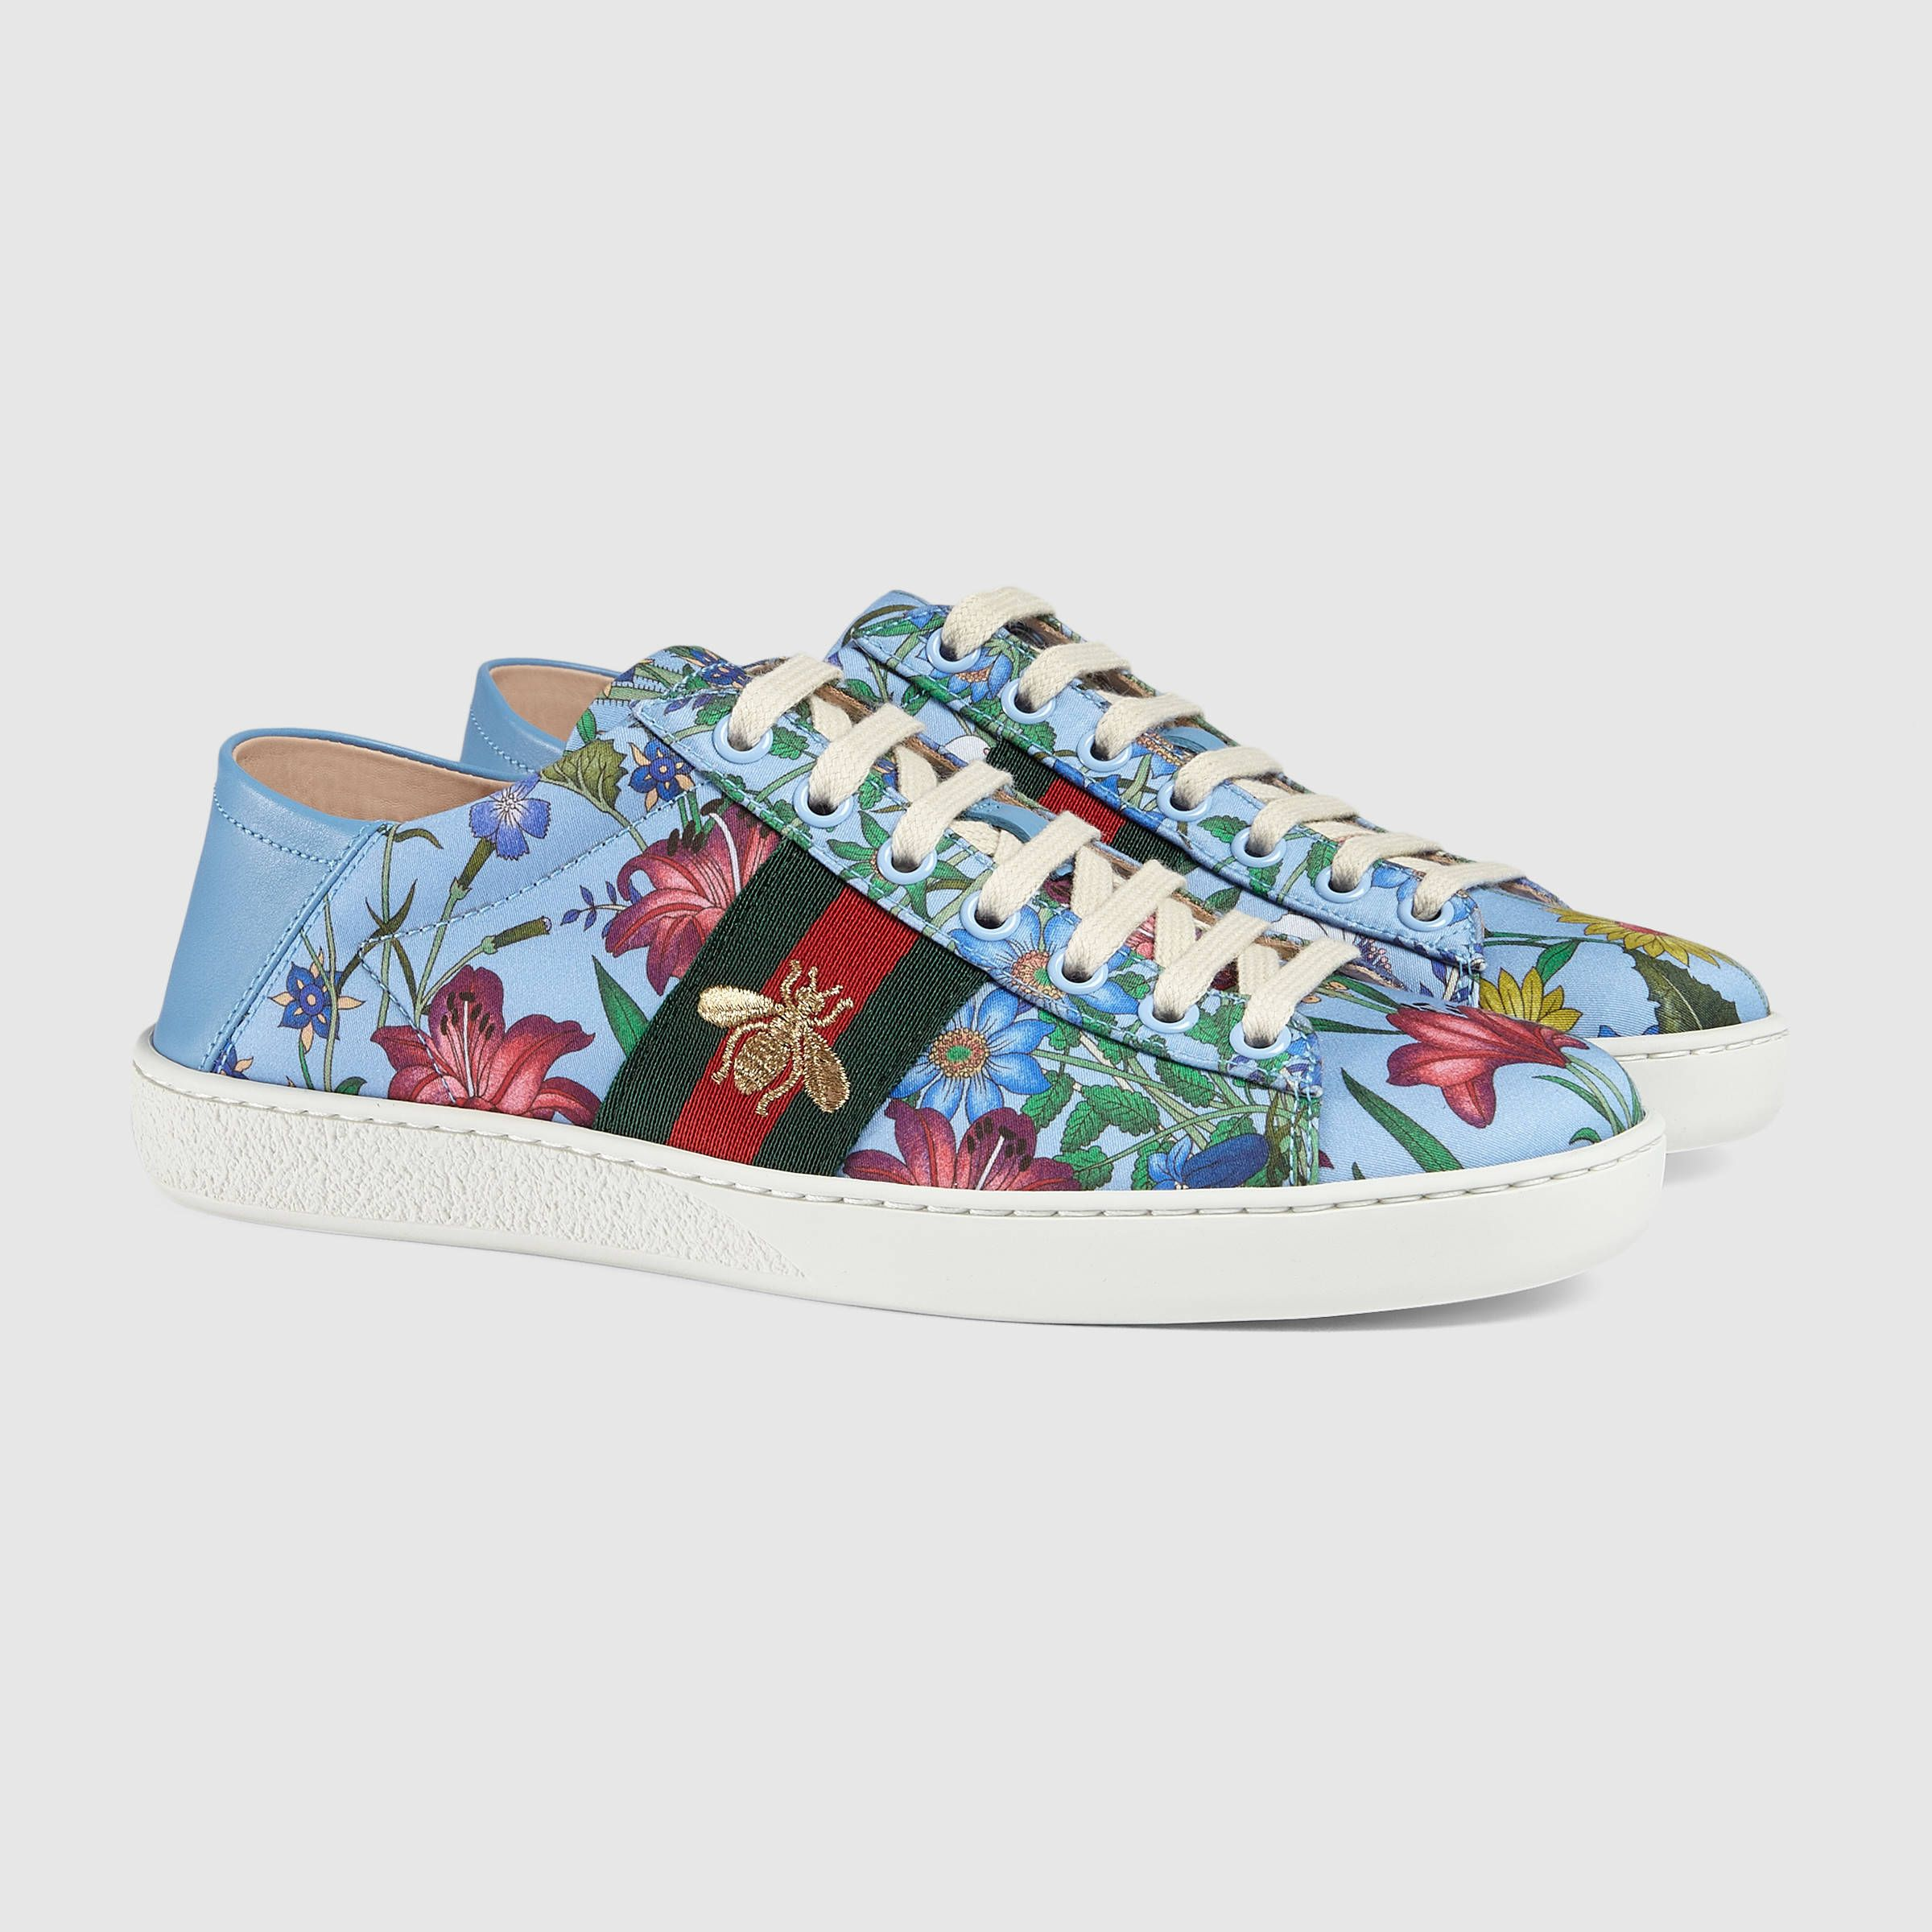 0cf86d6a40f Gucci Ace New Flora print sneaker Detail 2